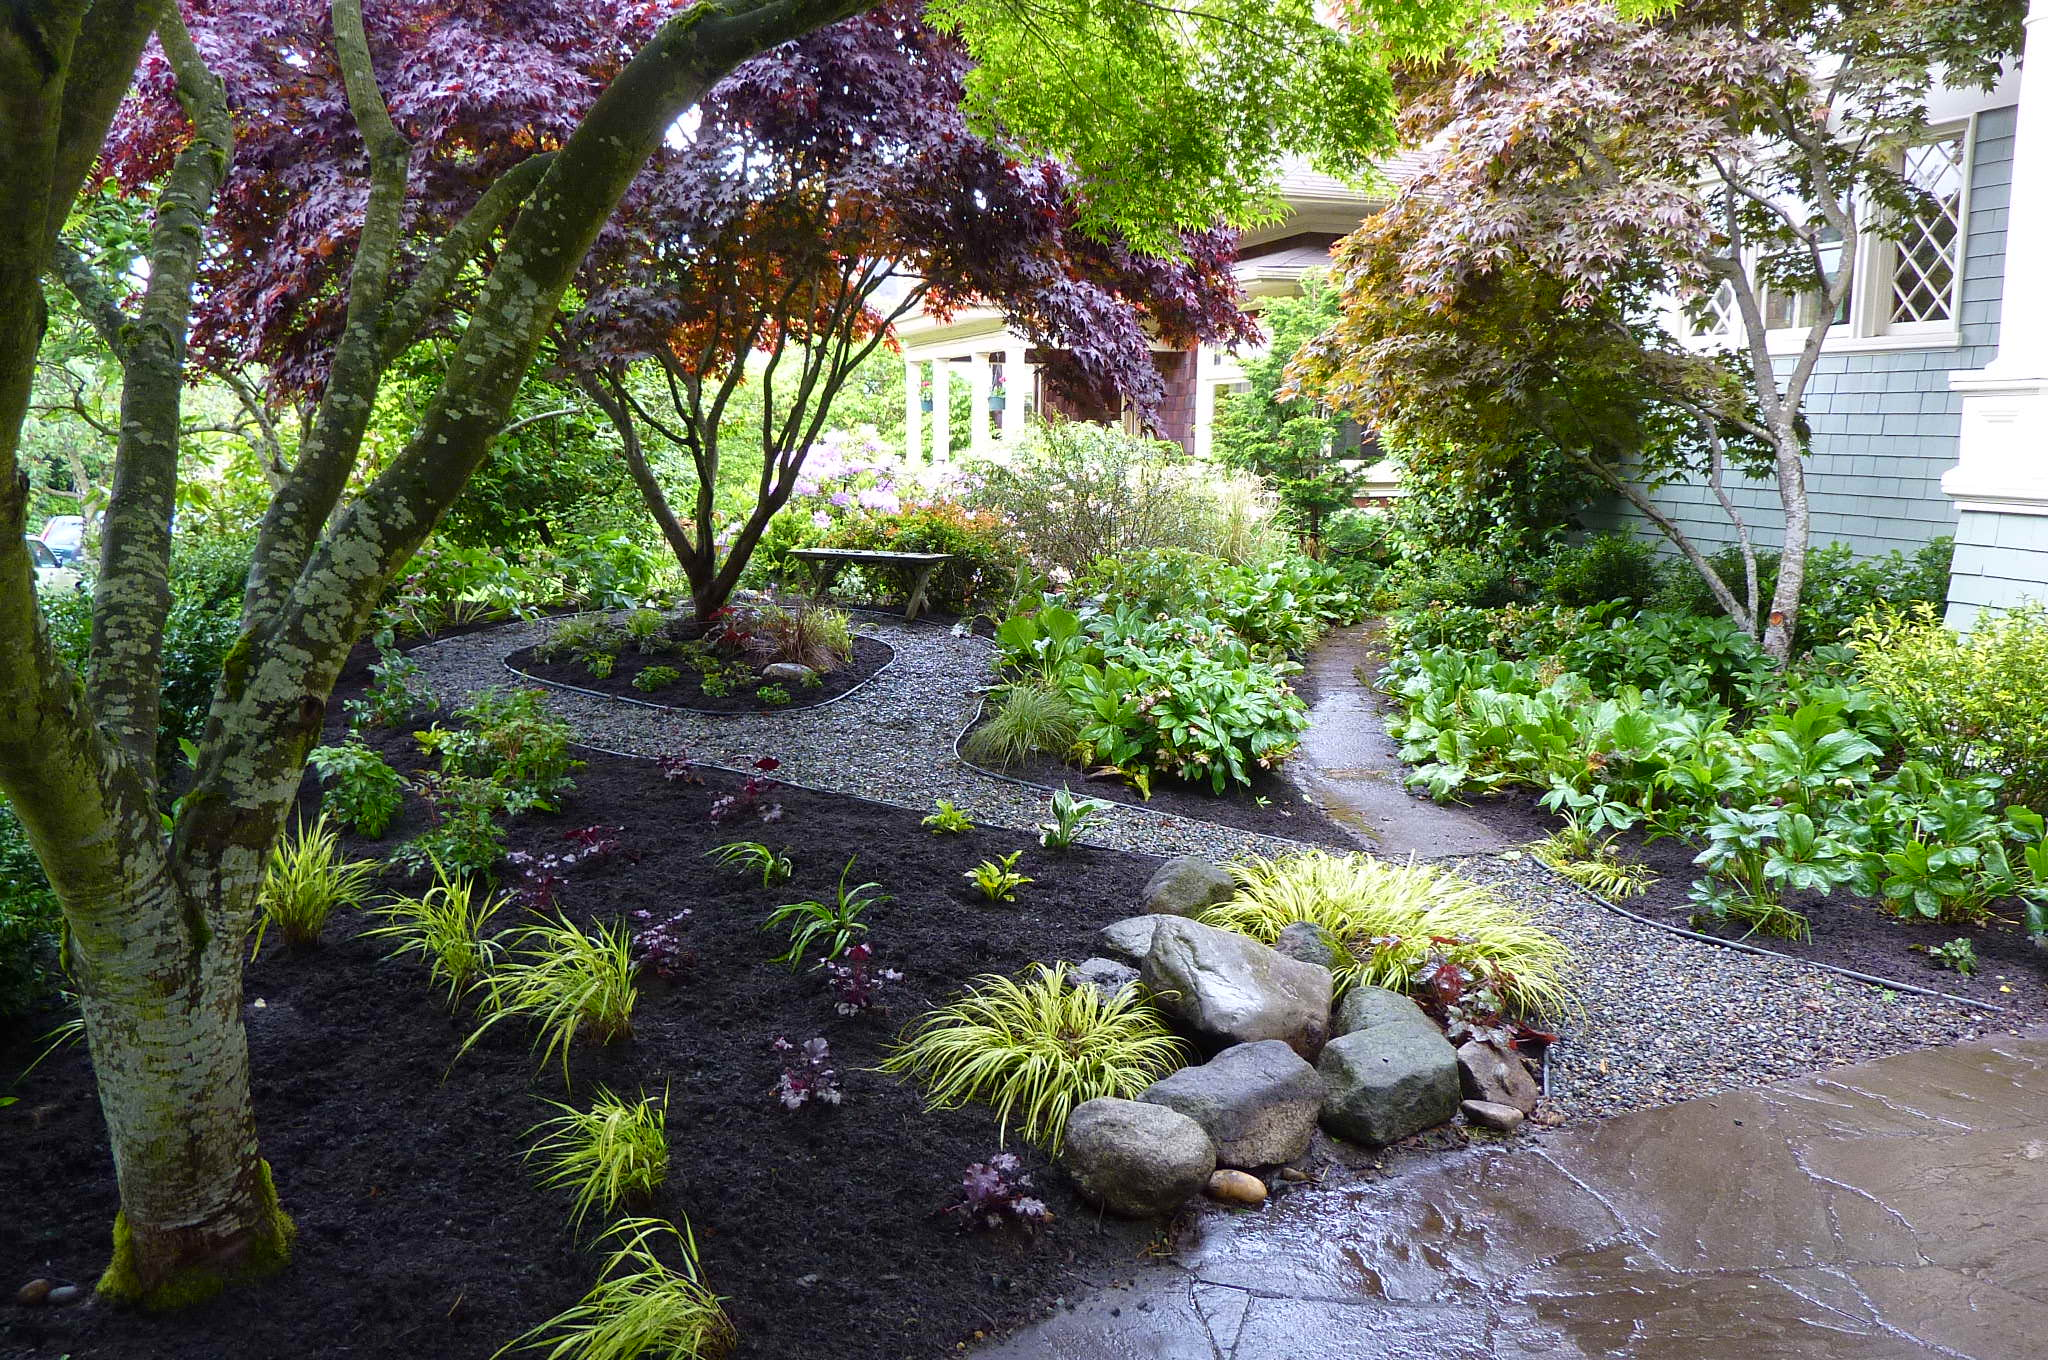 Landscaping Companies Near Me | Local Lawn Services Des Moines